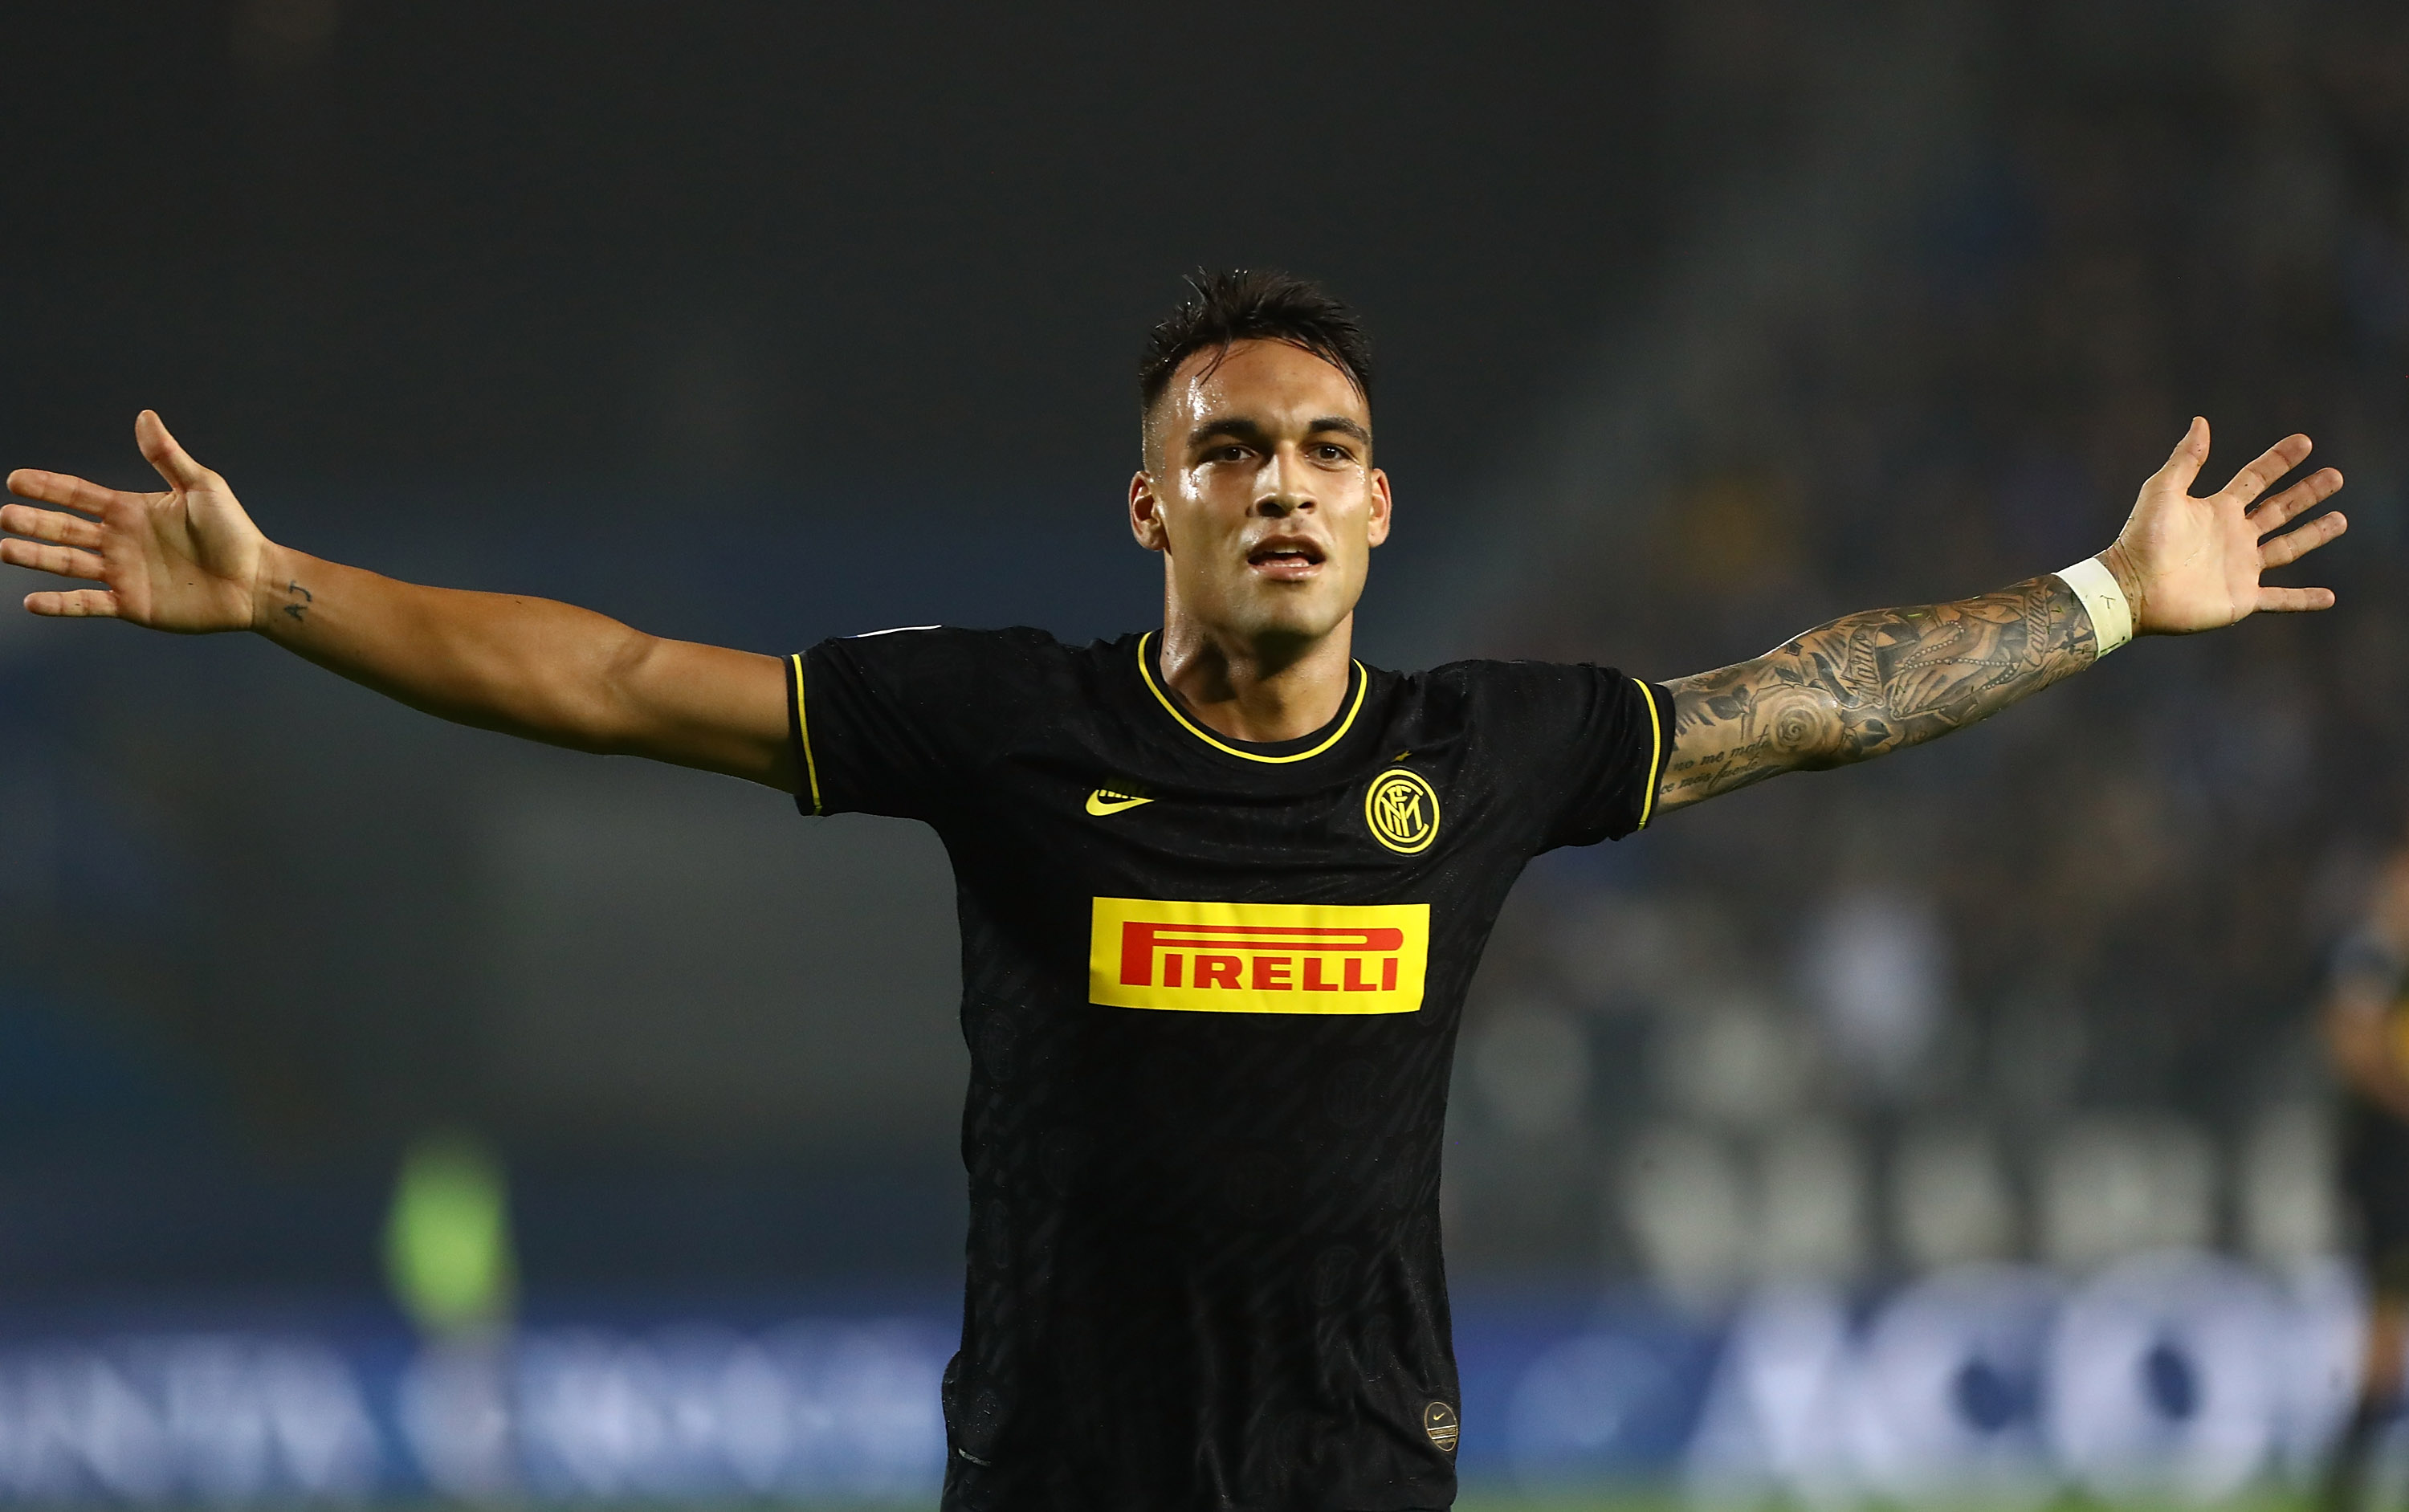 'He'll have to sacrifice and earn his place' - Scaloni weighs in on Lautaro's links to Barca